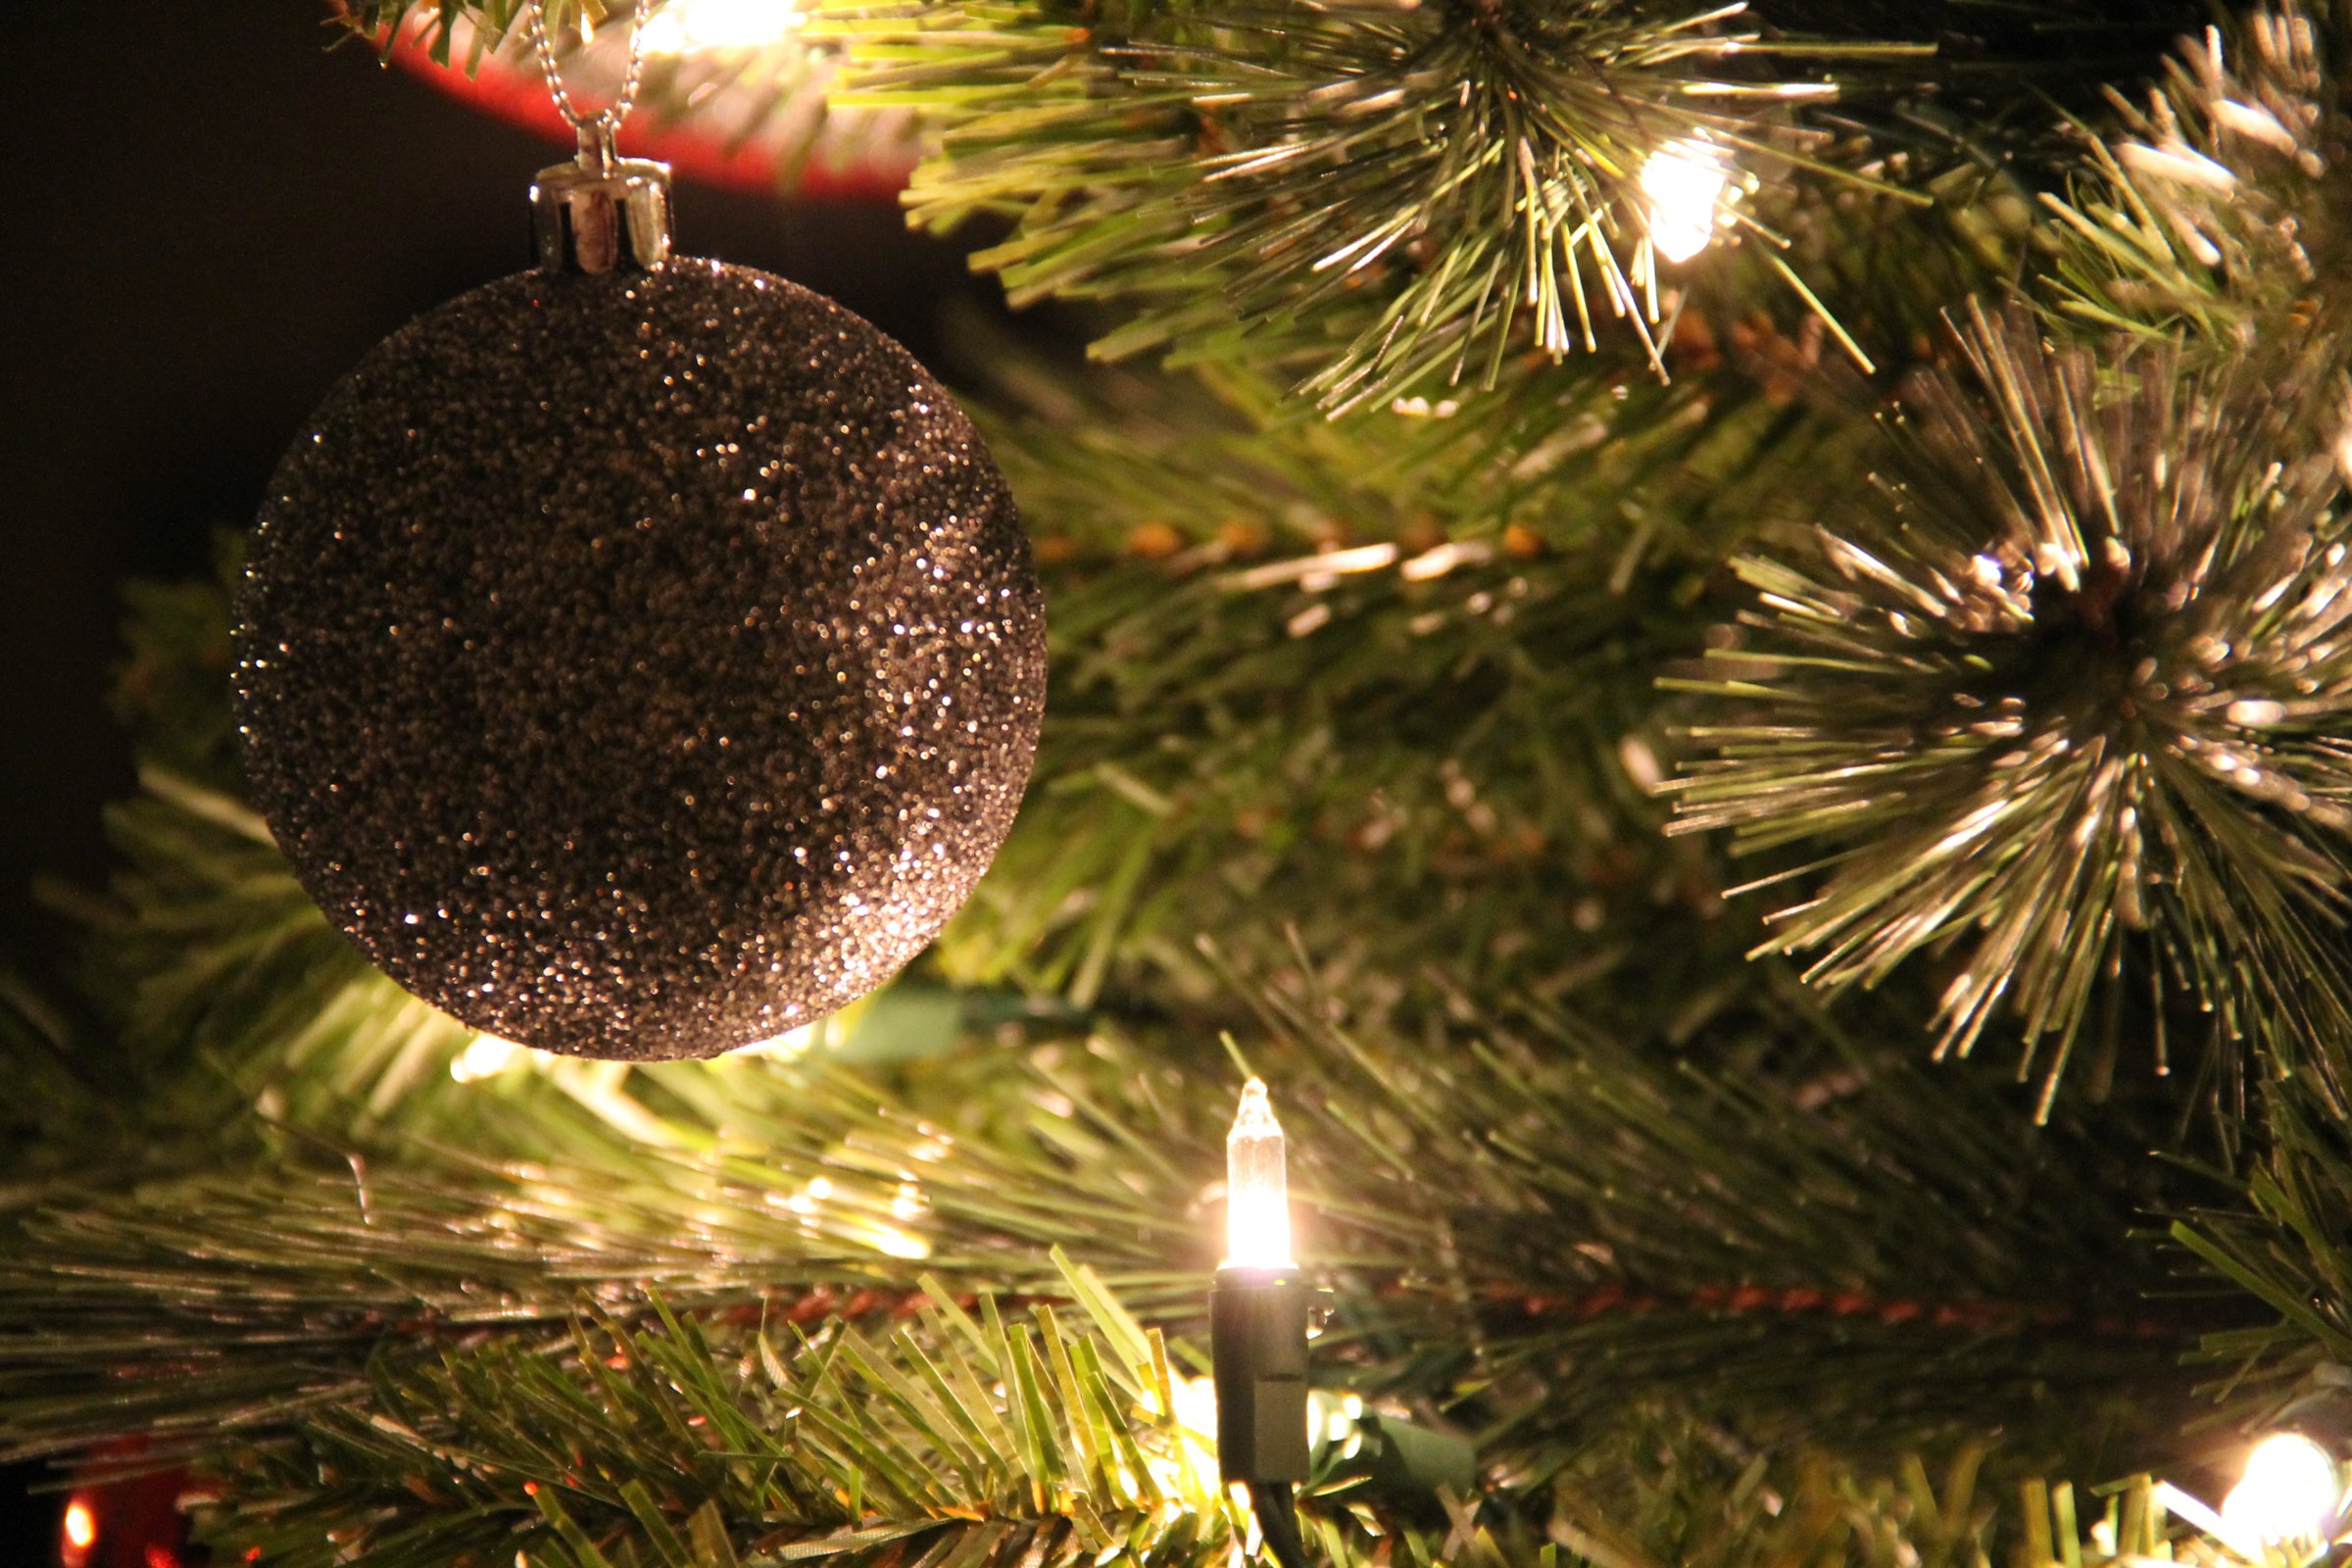 Close Up Of Christmas Tree With Silver Ball Ornament